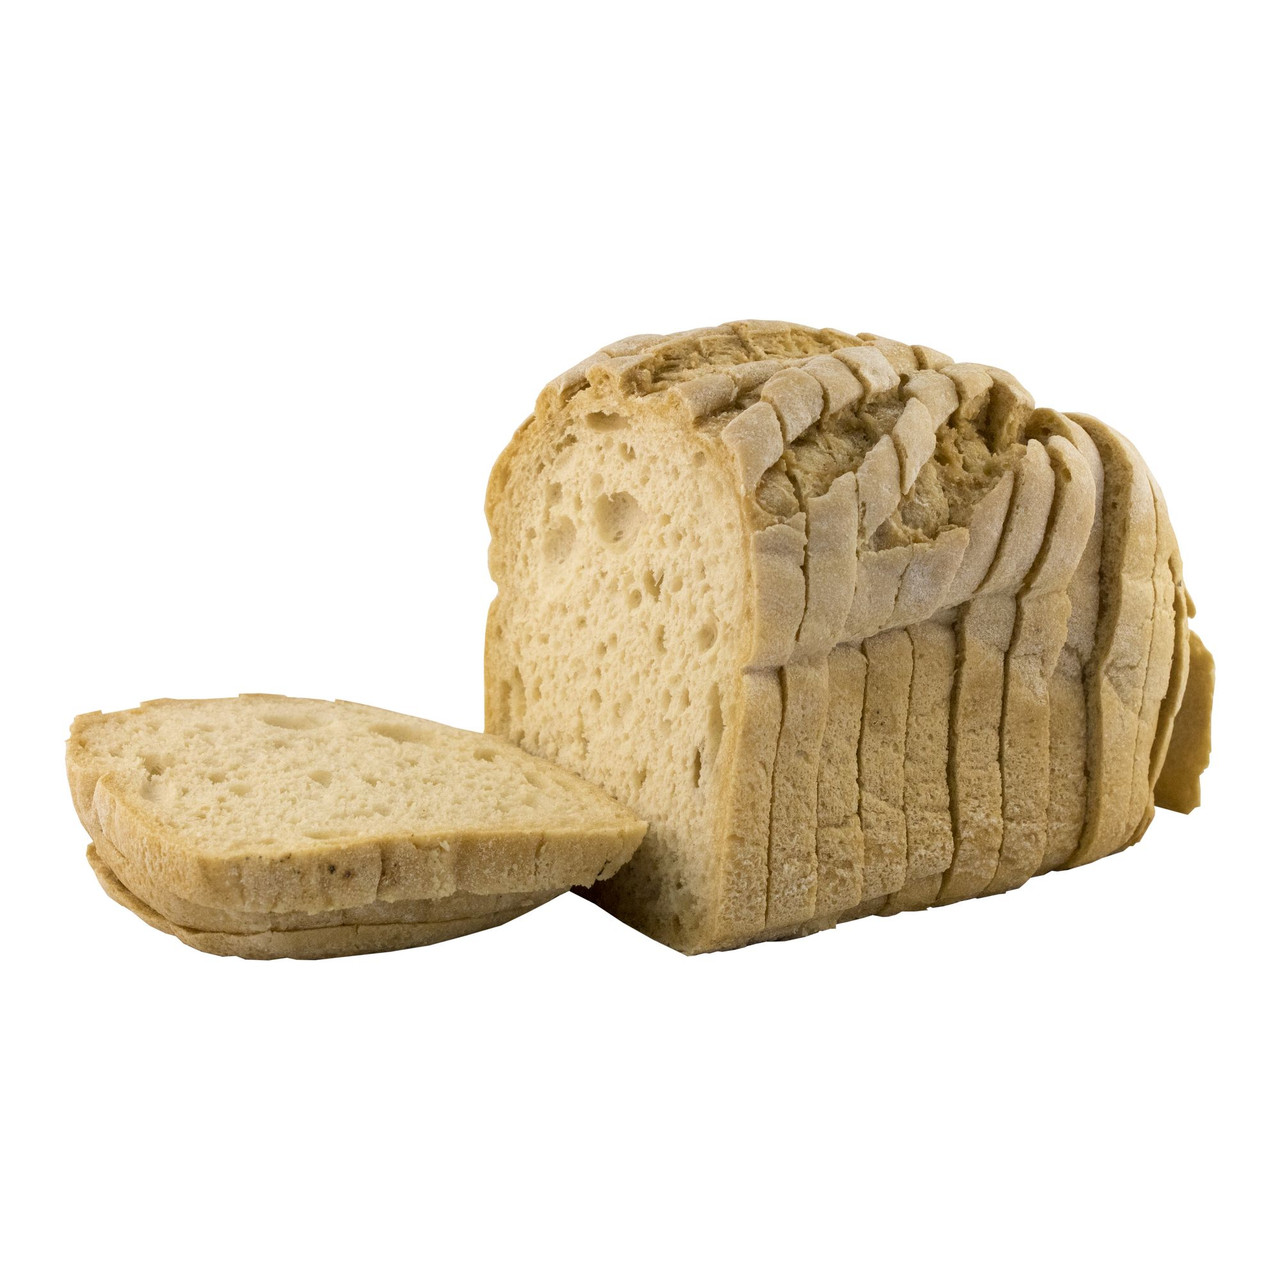 GLEBE FARM GLUTEN FREE BROWN SLICED LOAF 400g